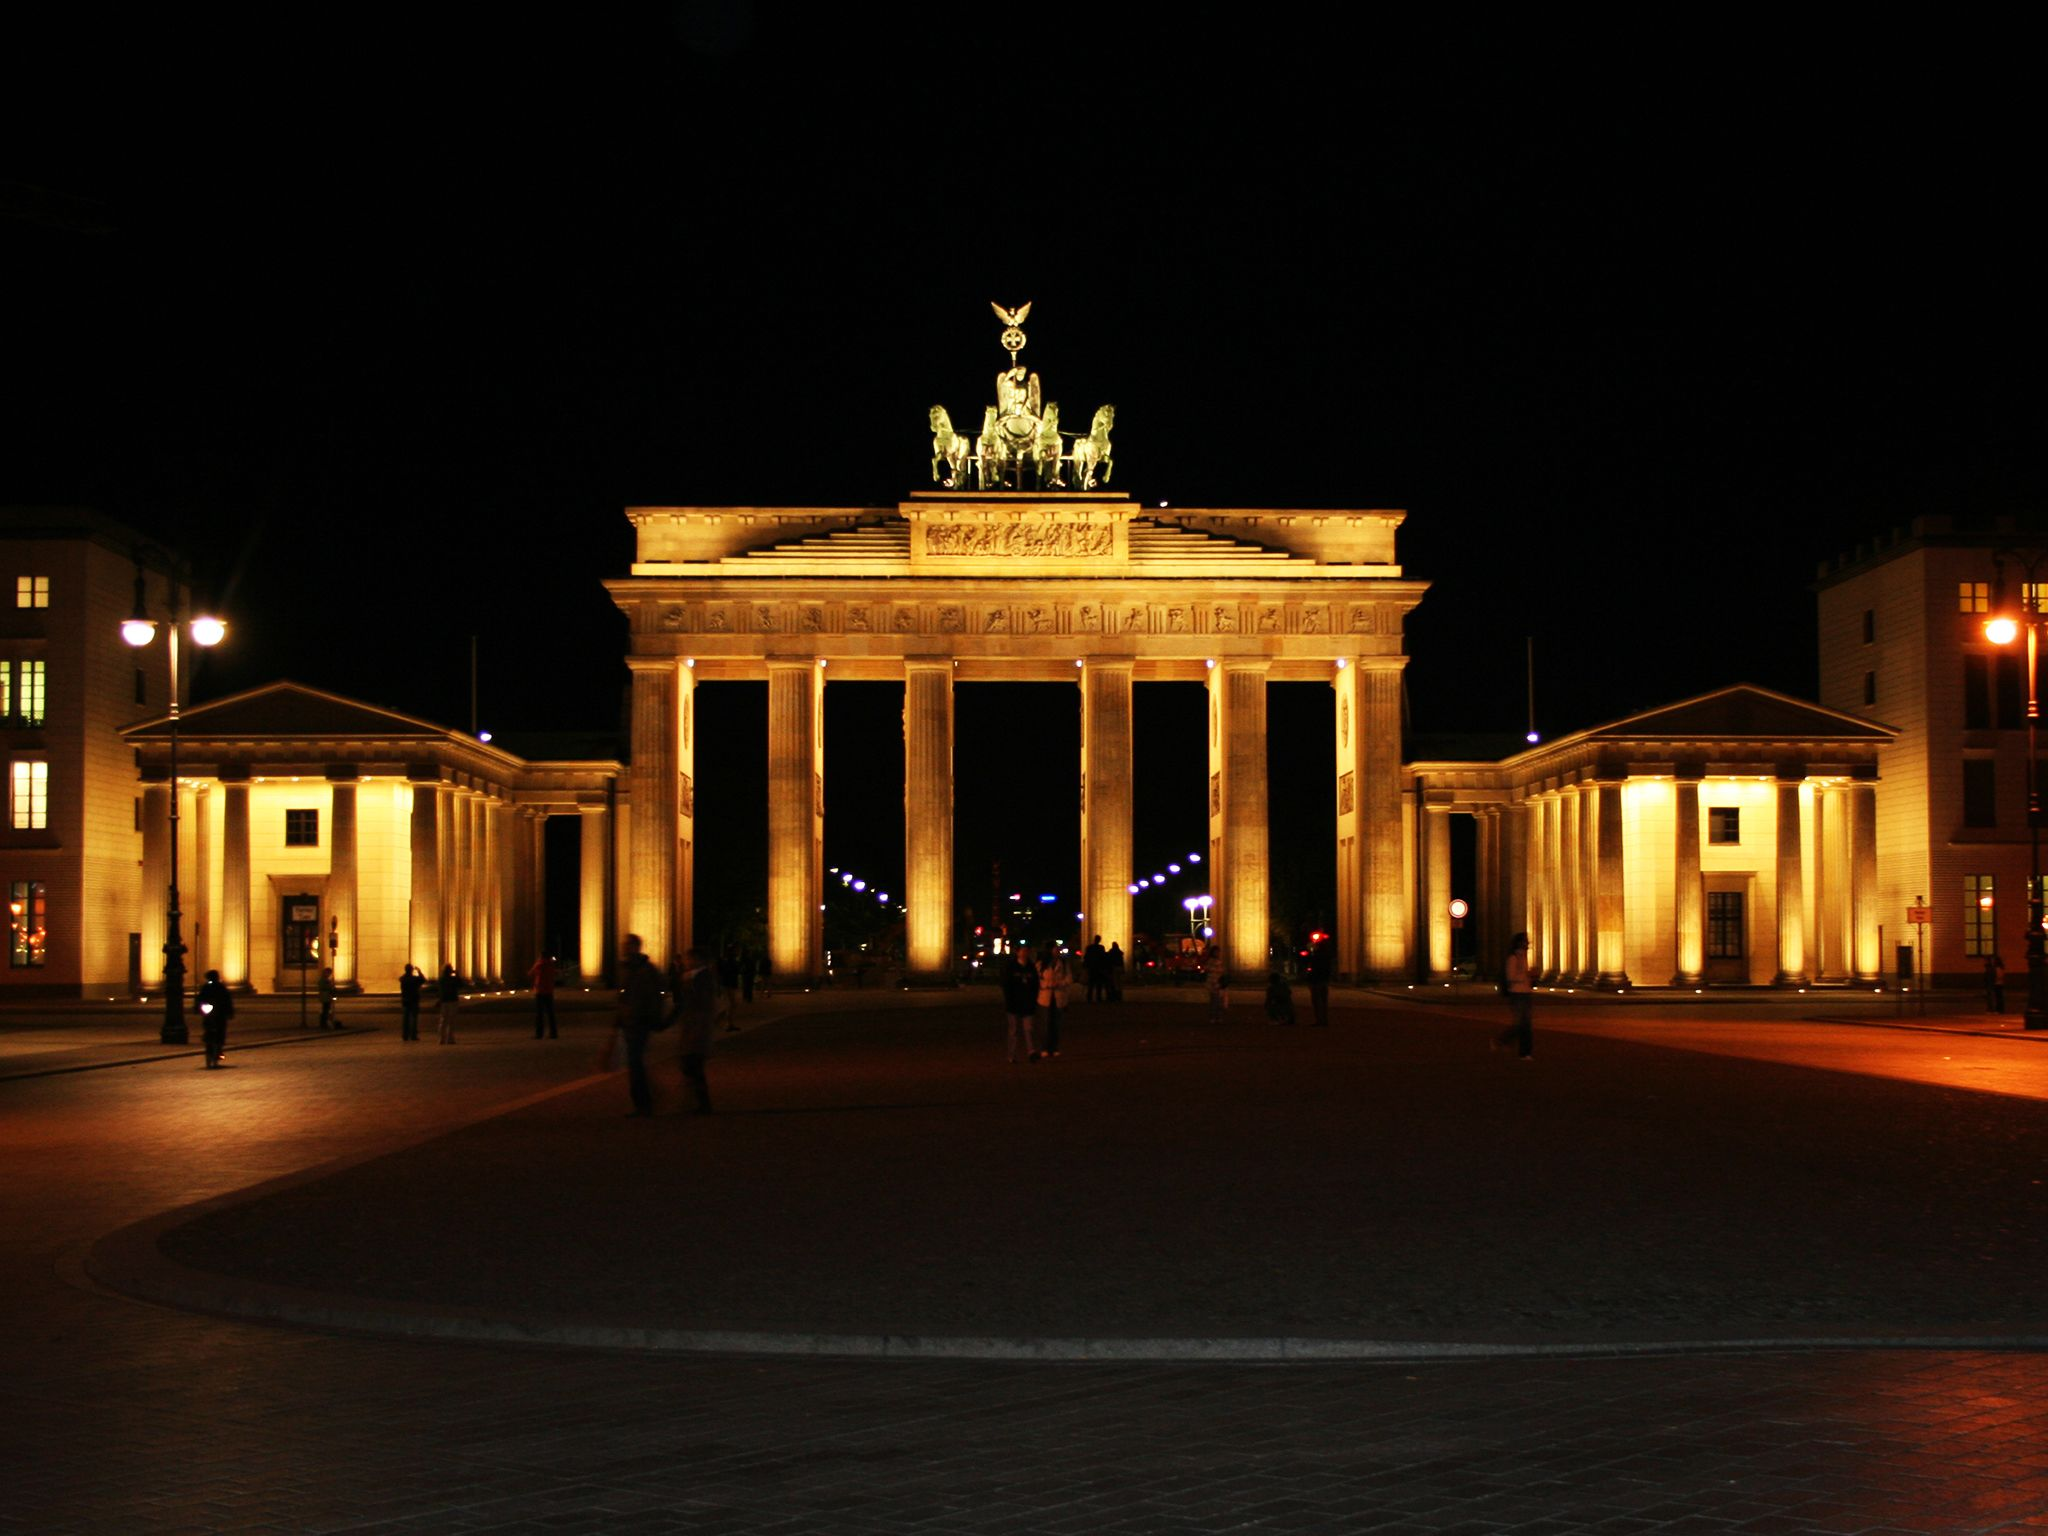 Brandenburg Gate in Berlin at night. This image is from Hasselhoff vs. The Berlin Wall. [Photo of the day - November 2014]